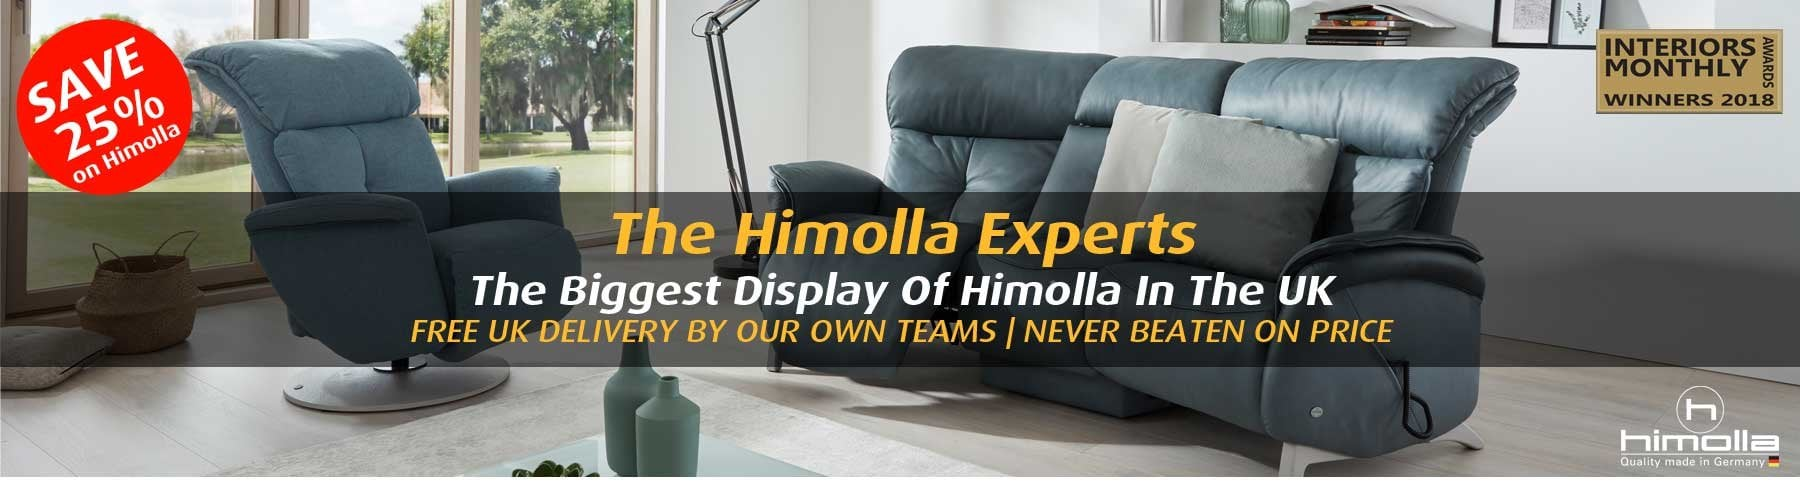 ebbf458050a6 Himolla Sofas & Recliners - The Largest Display Of Himolla In The UK